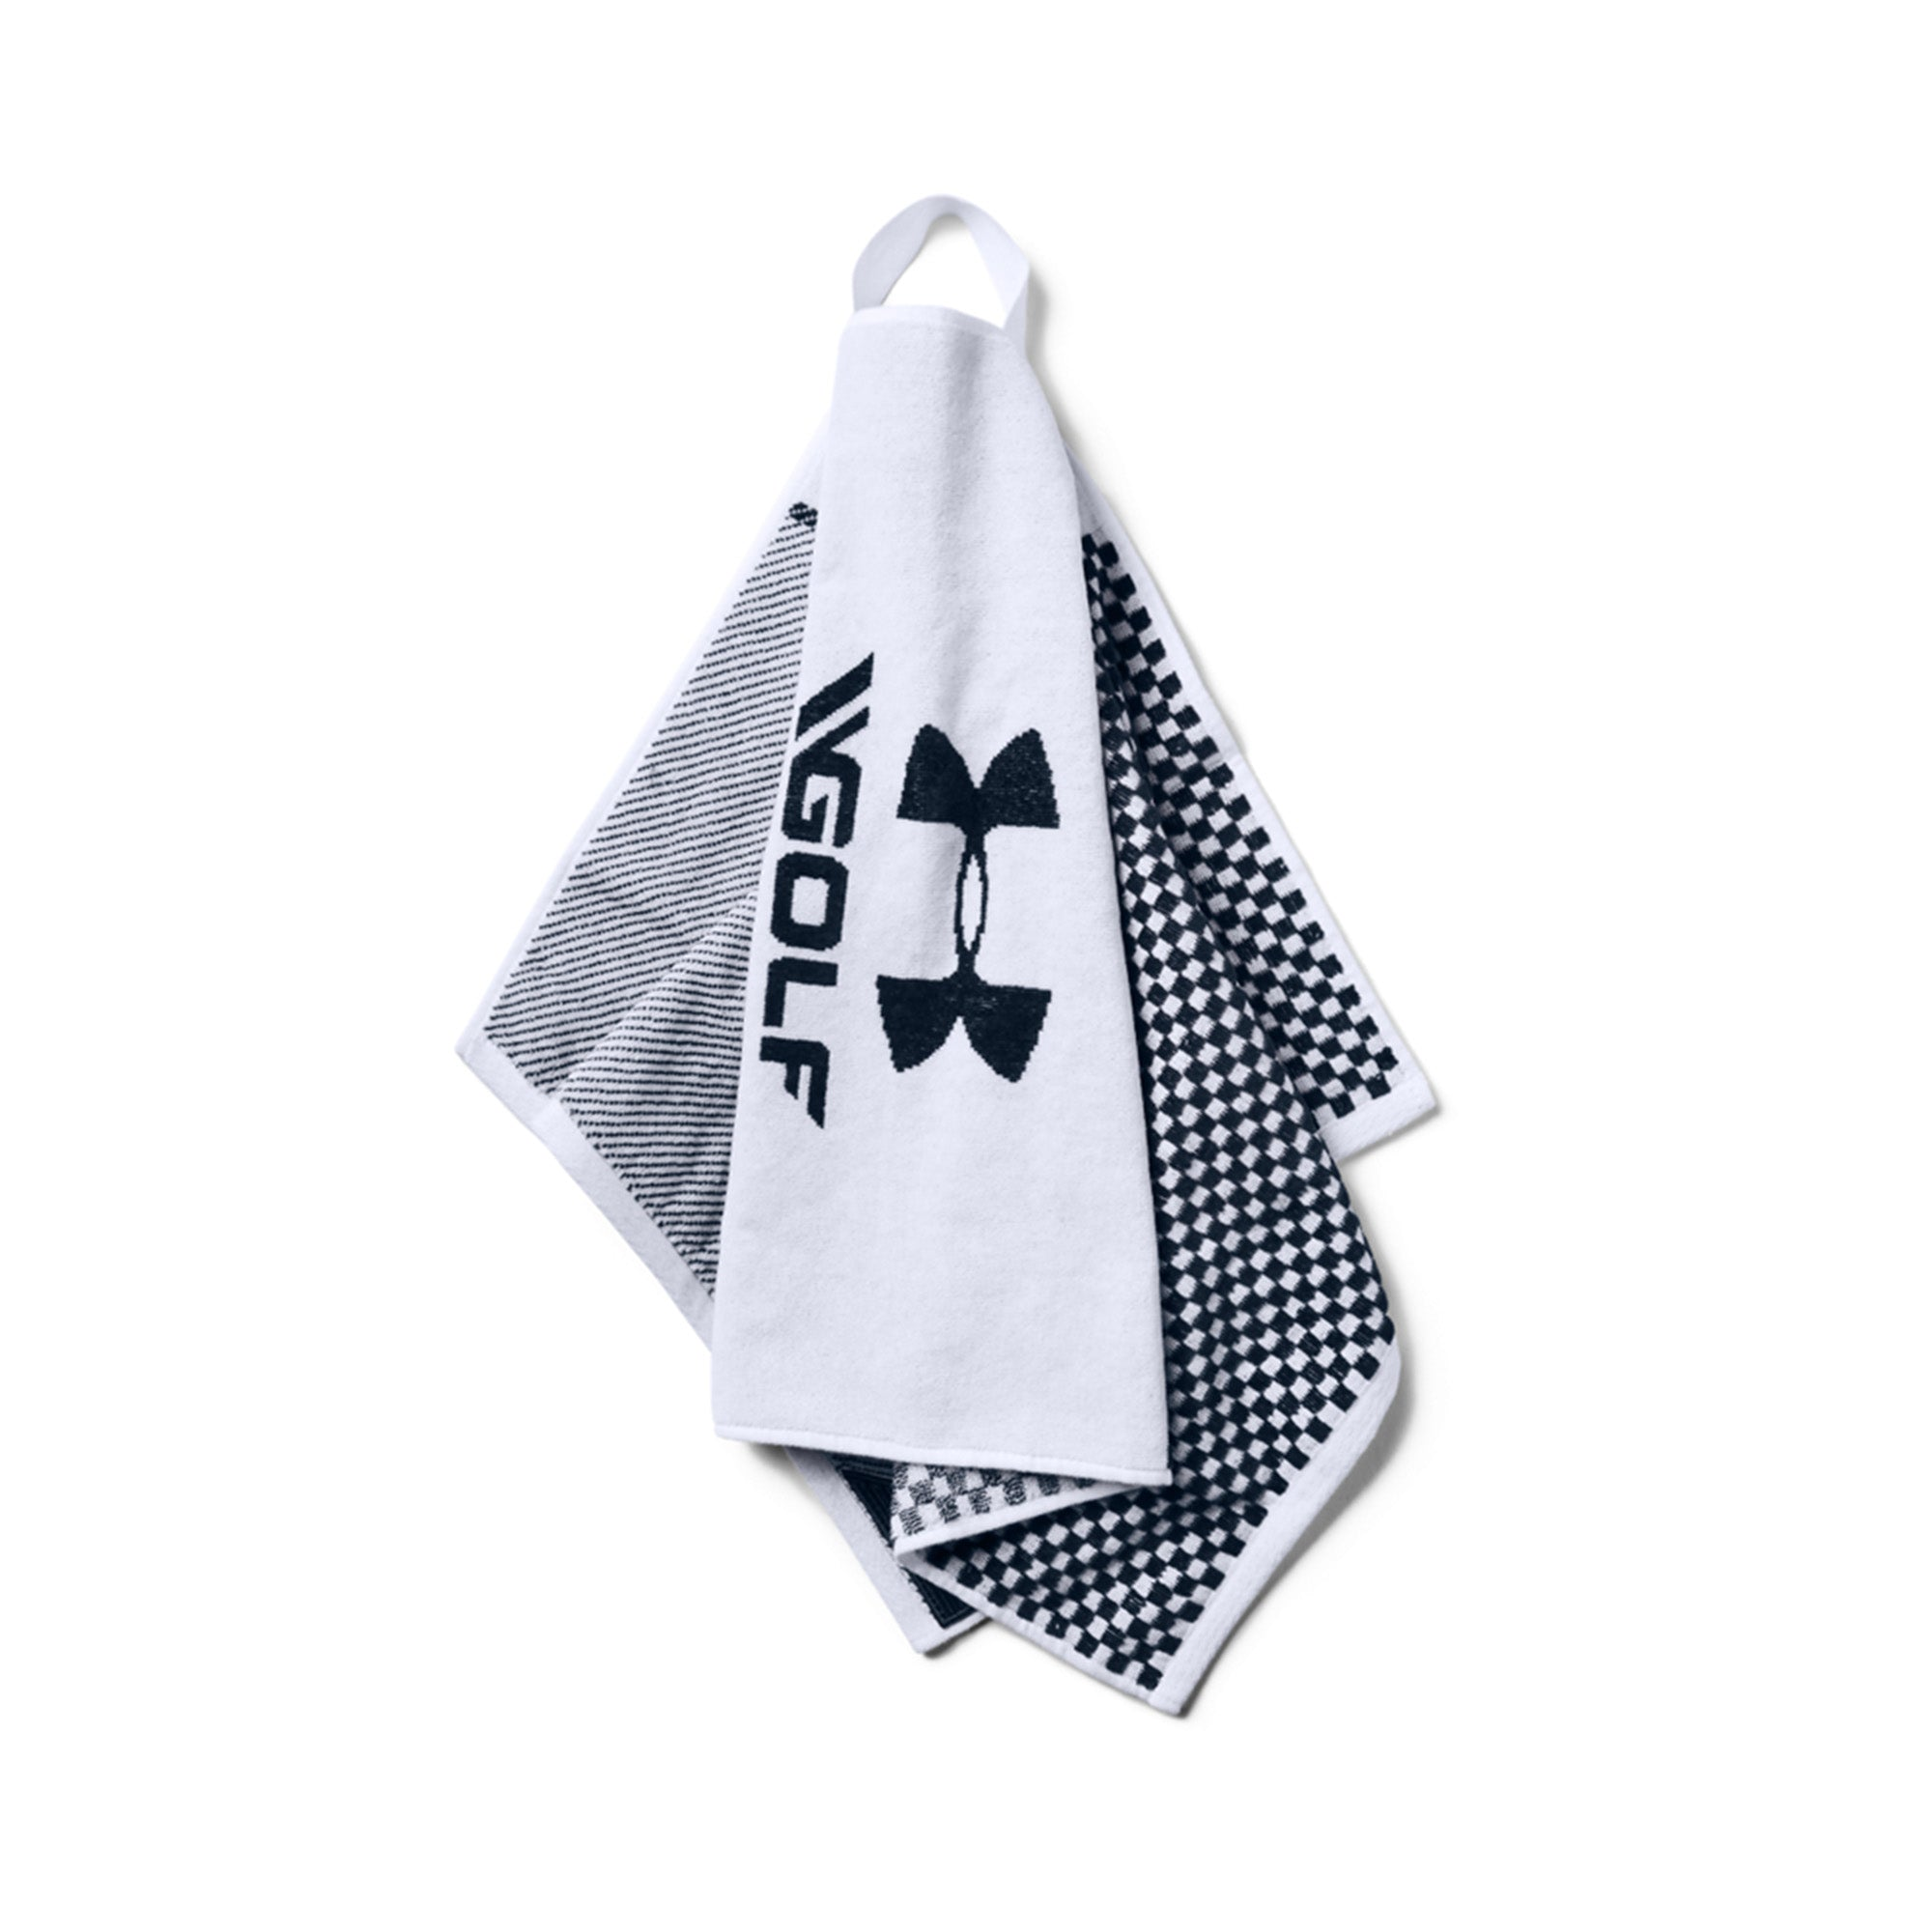 Under Armour Golf Large Towel 1325609